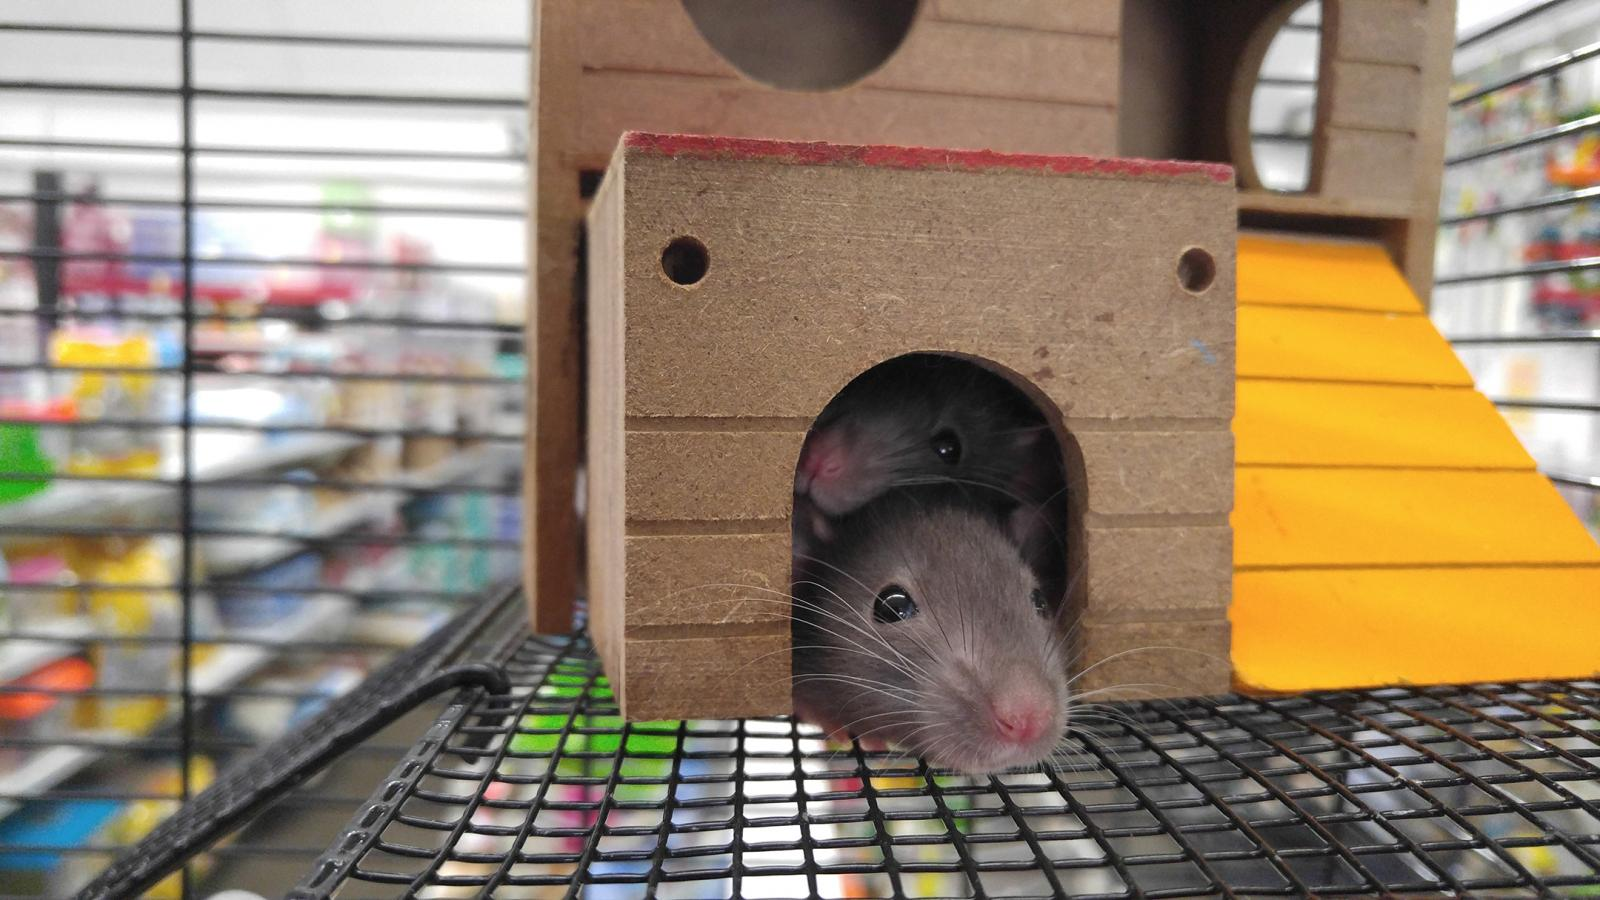 mice peeking out of toy house